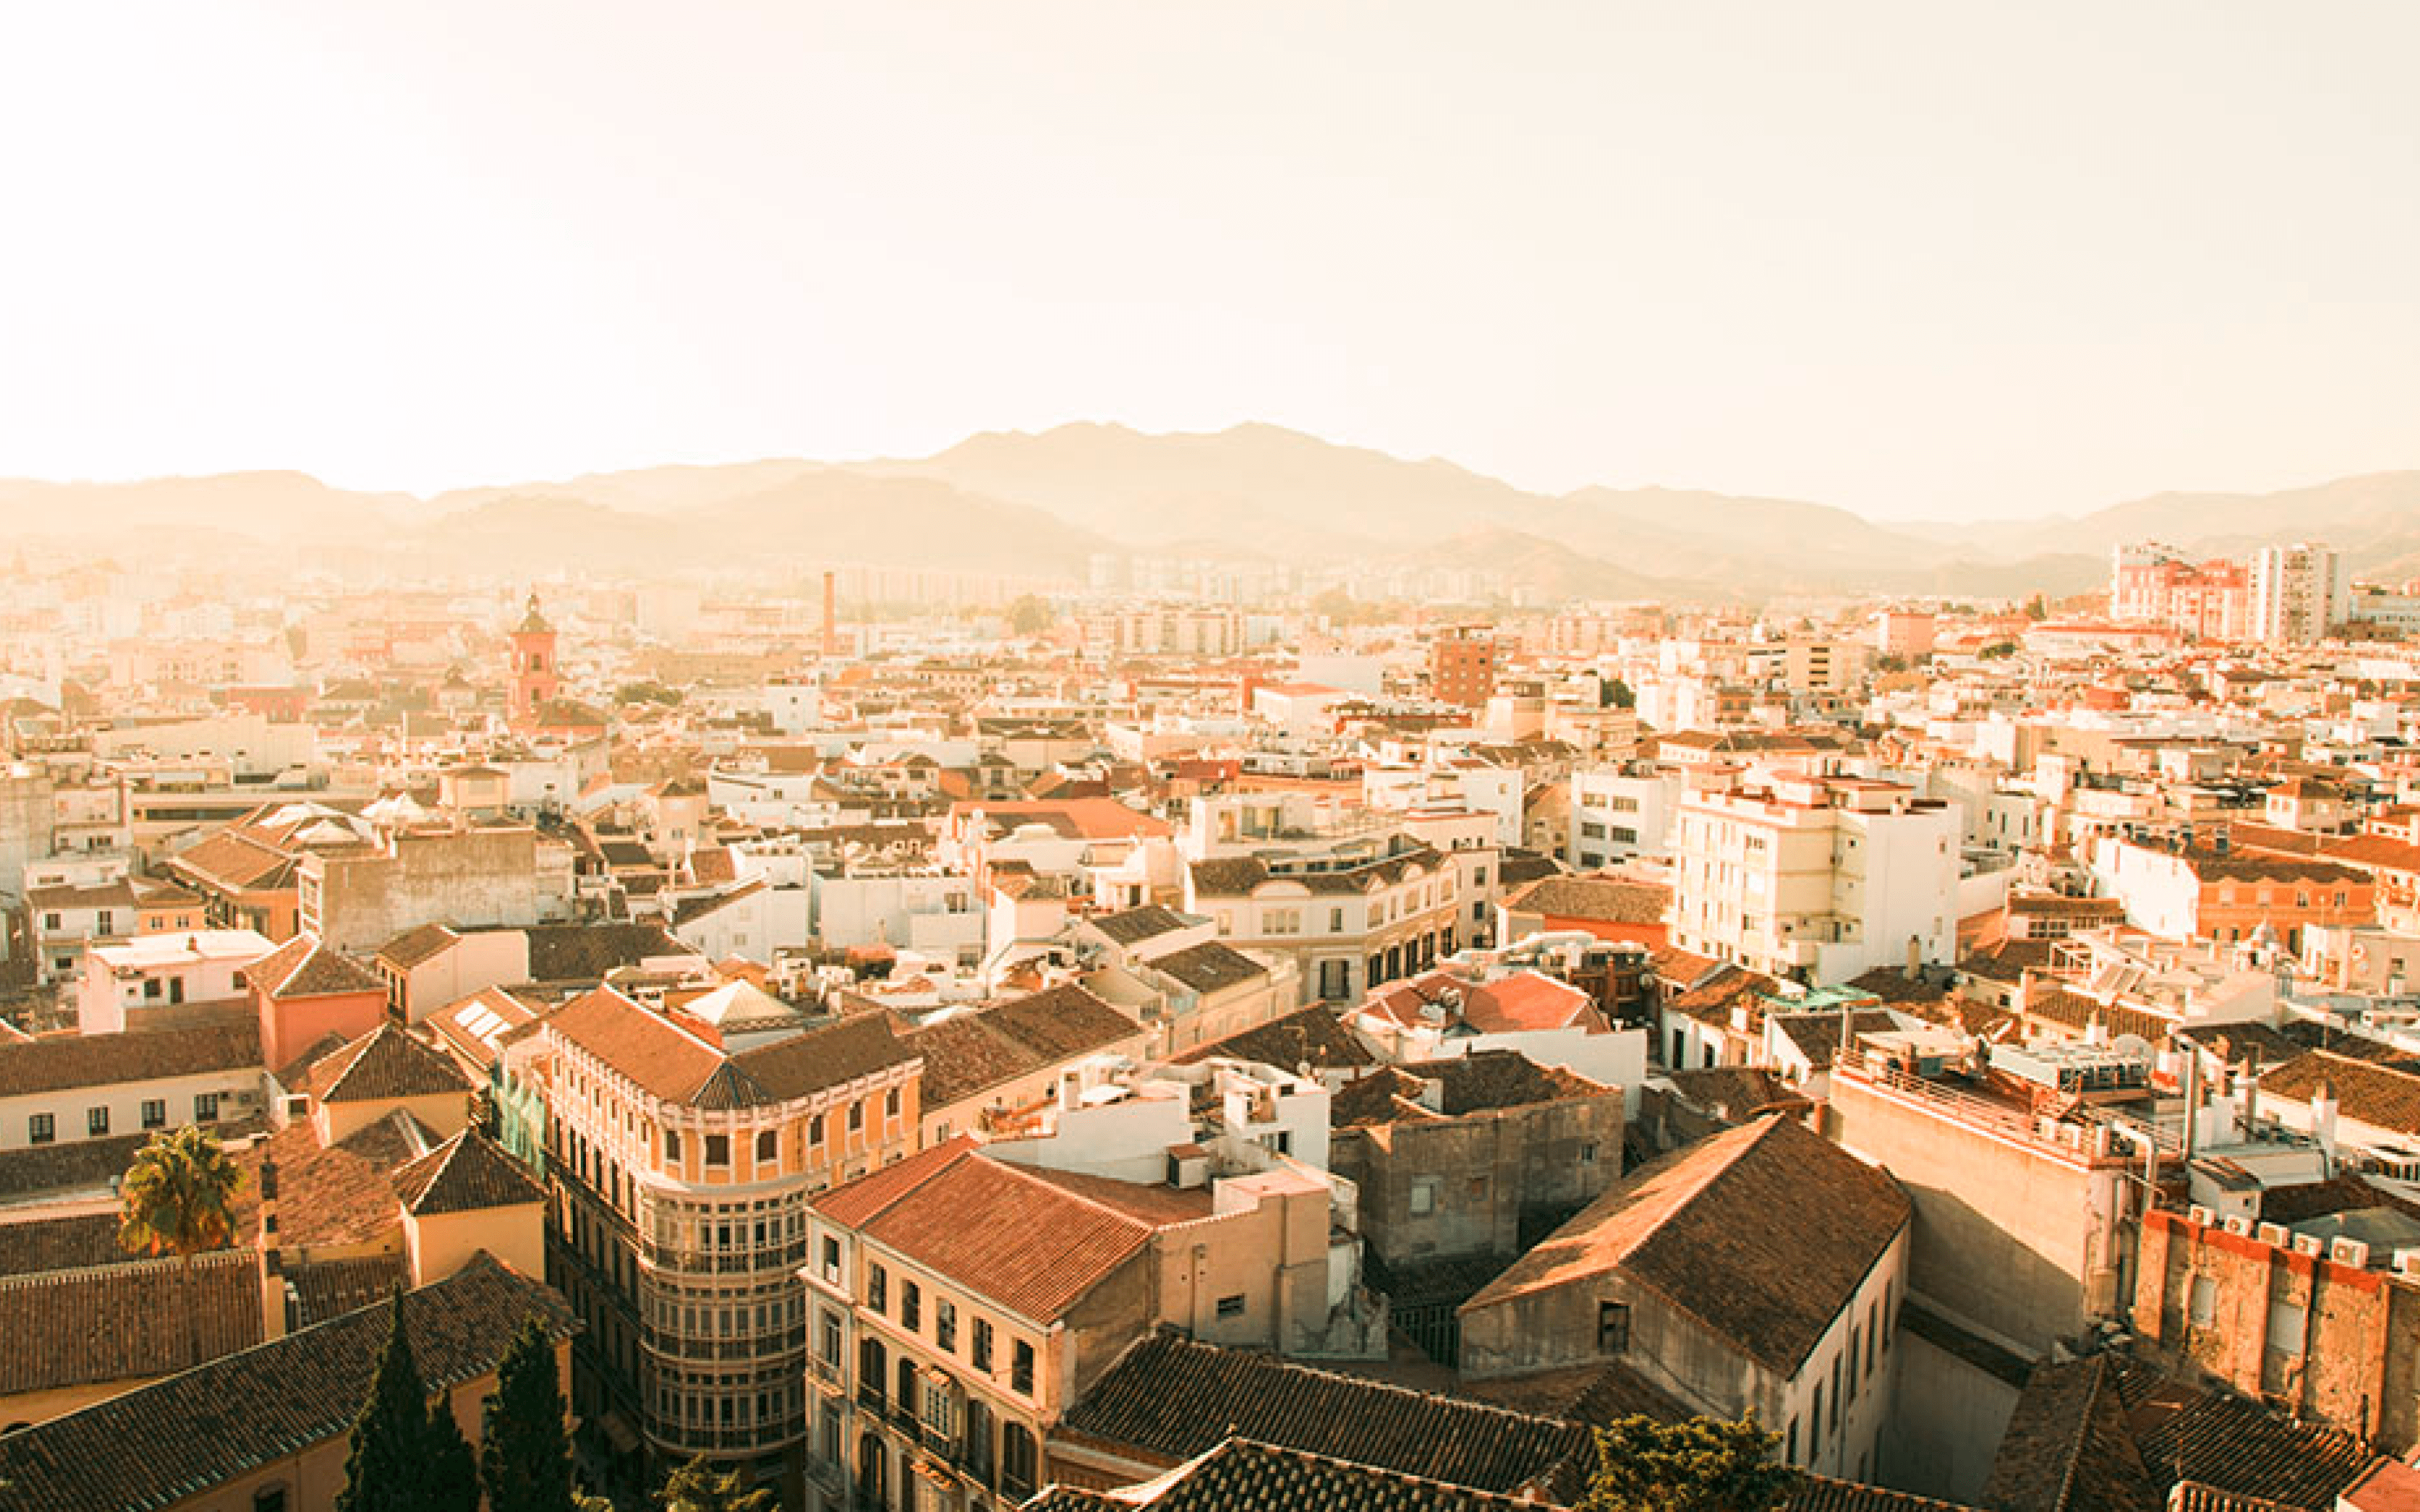 3 Valuable Lessons I Learned In Barcelona